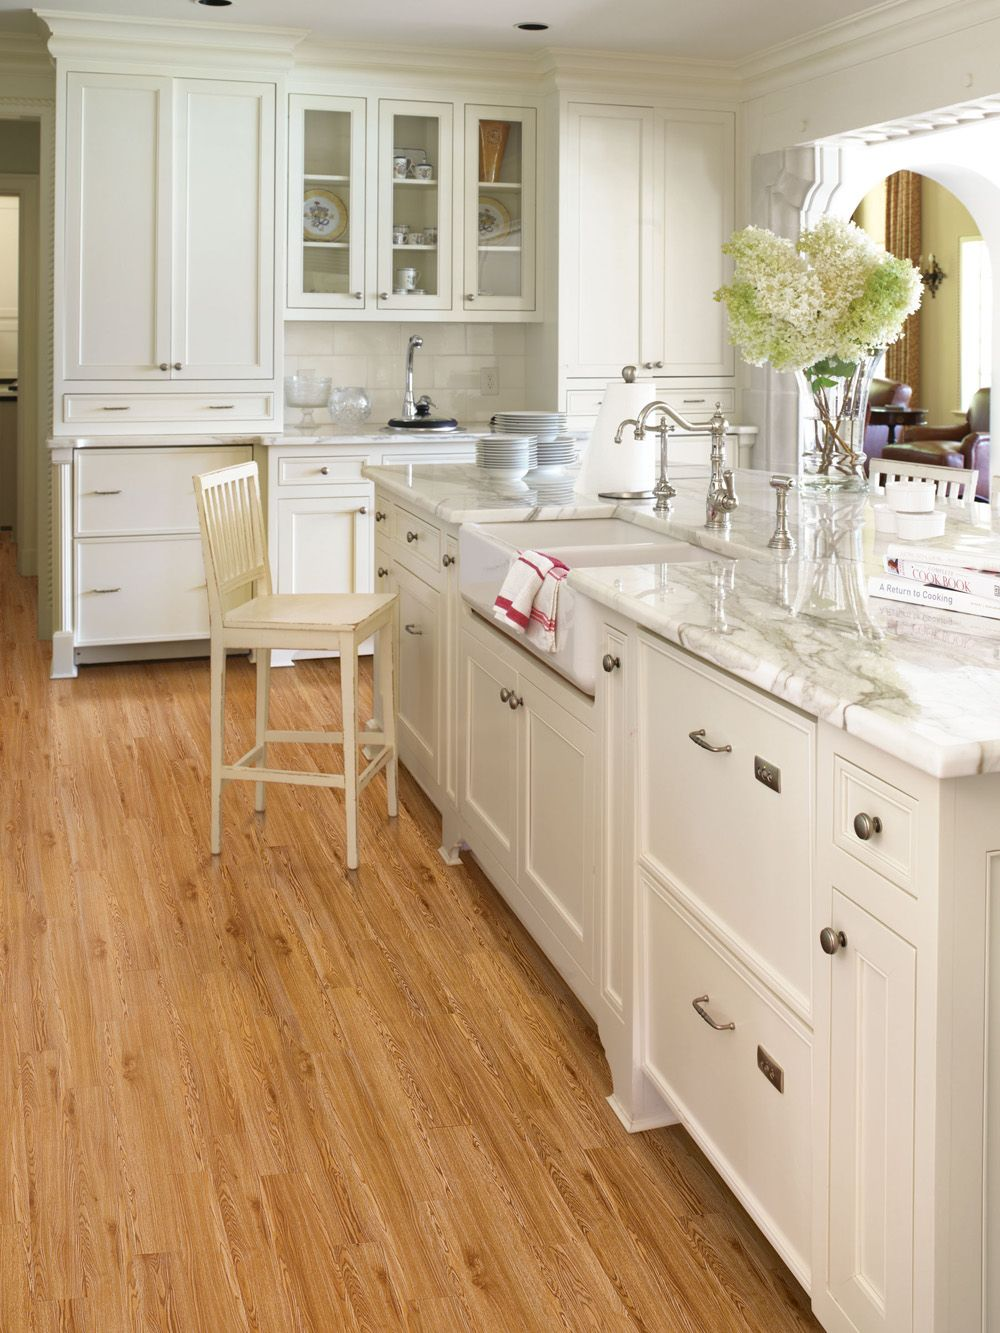 For a cozy yet modern kitchen, pair your light wood floors